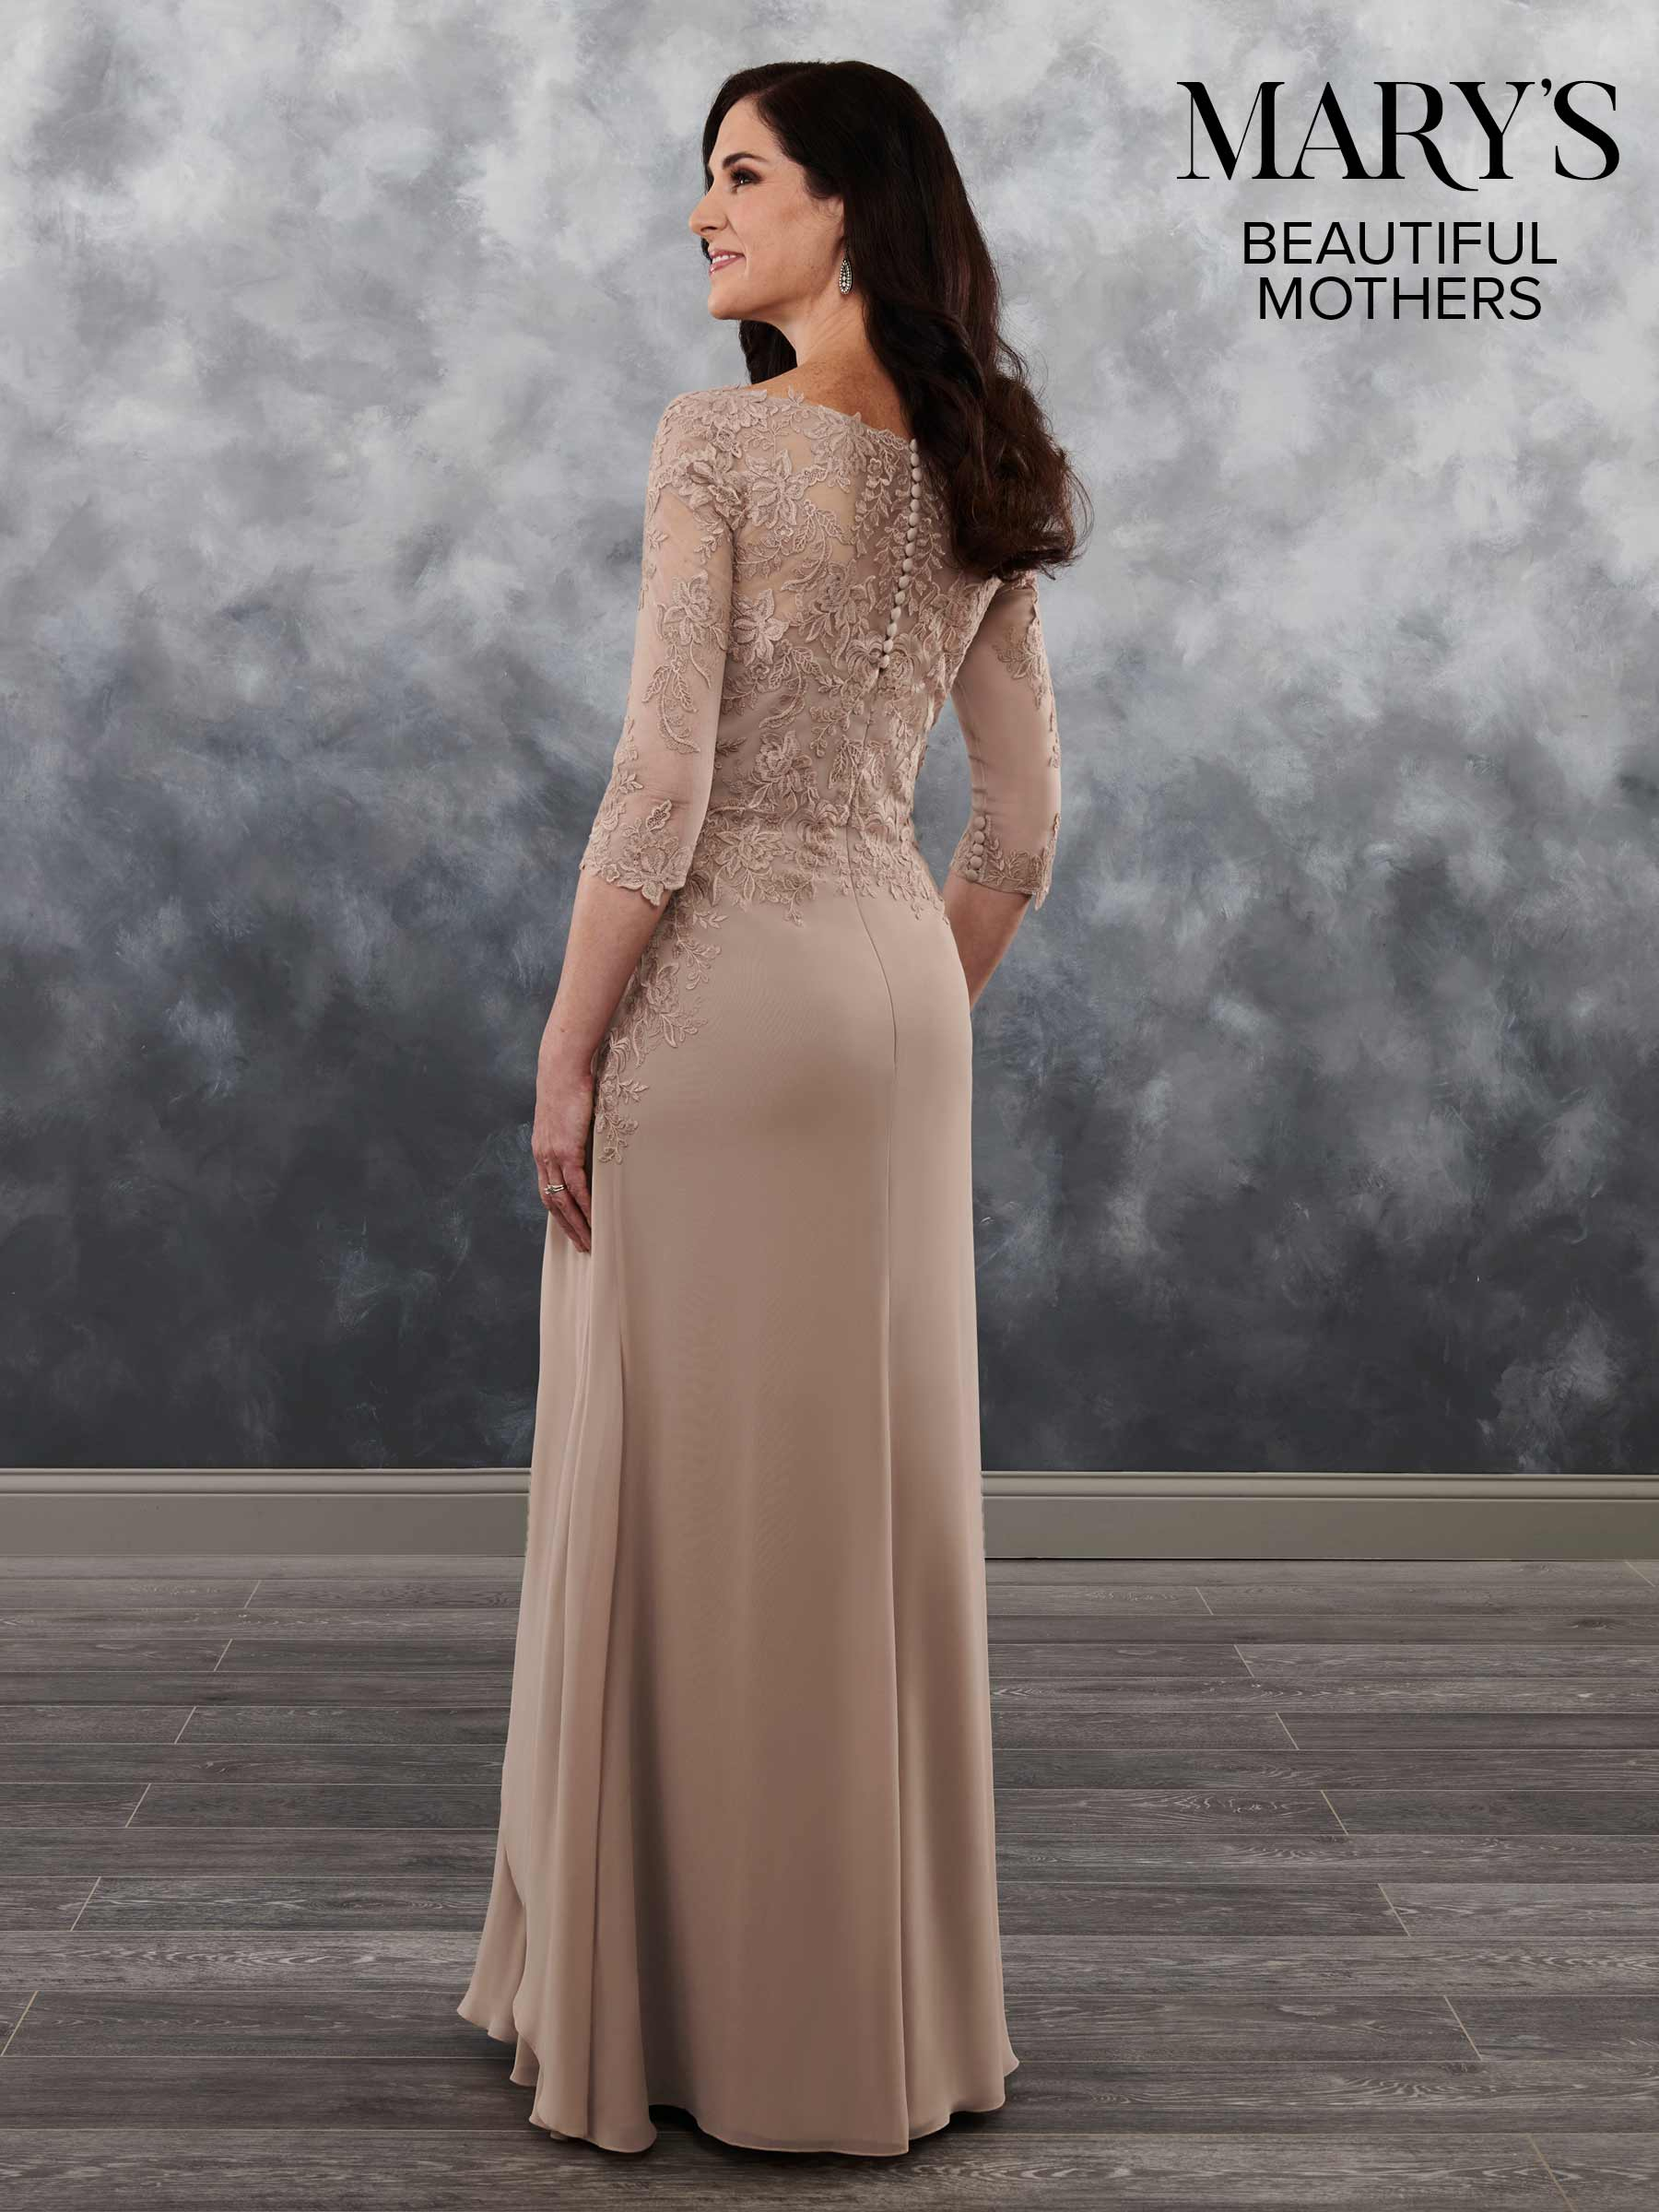 Mother Of The Bride Dresses | Beautiful Mothers | Style - MB8020